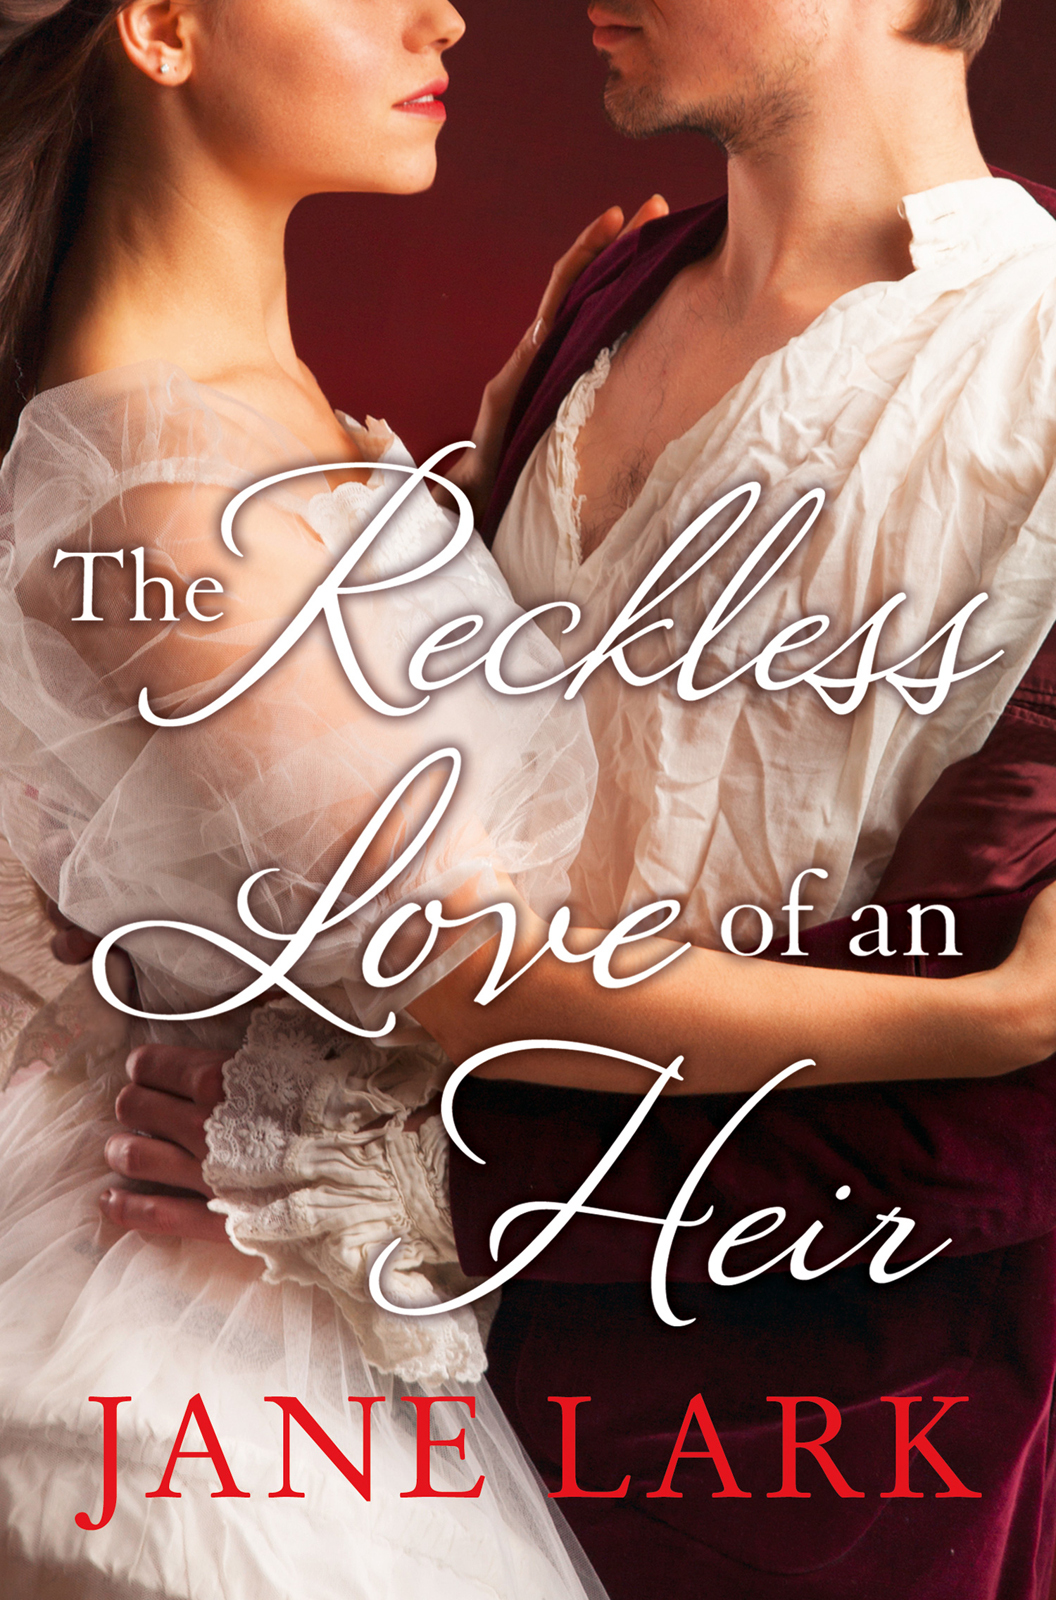 jane toombs the missing heir Jane Lark The Reckless Love of an Heir: An epic historical romance perfect for fans of period drama Victoria